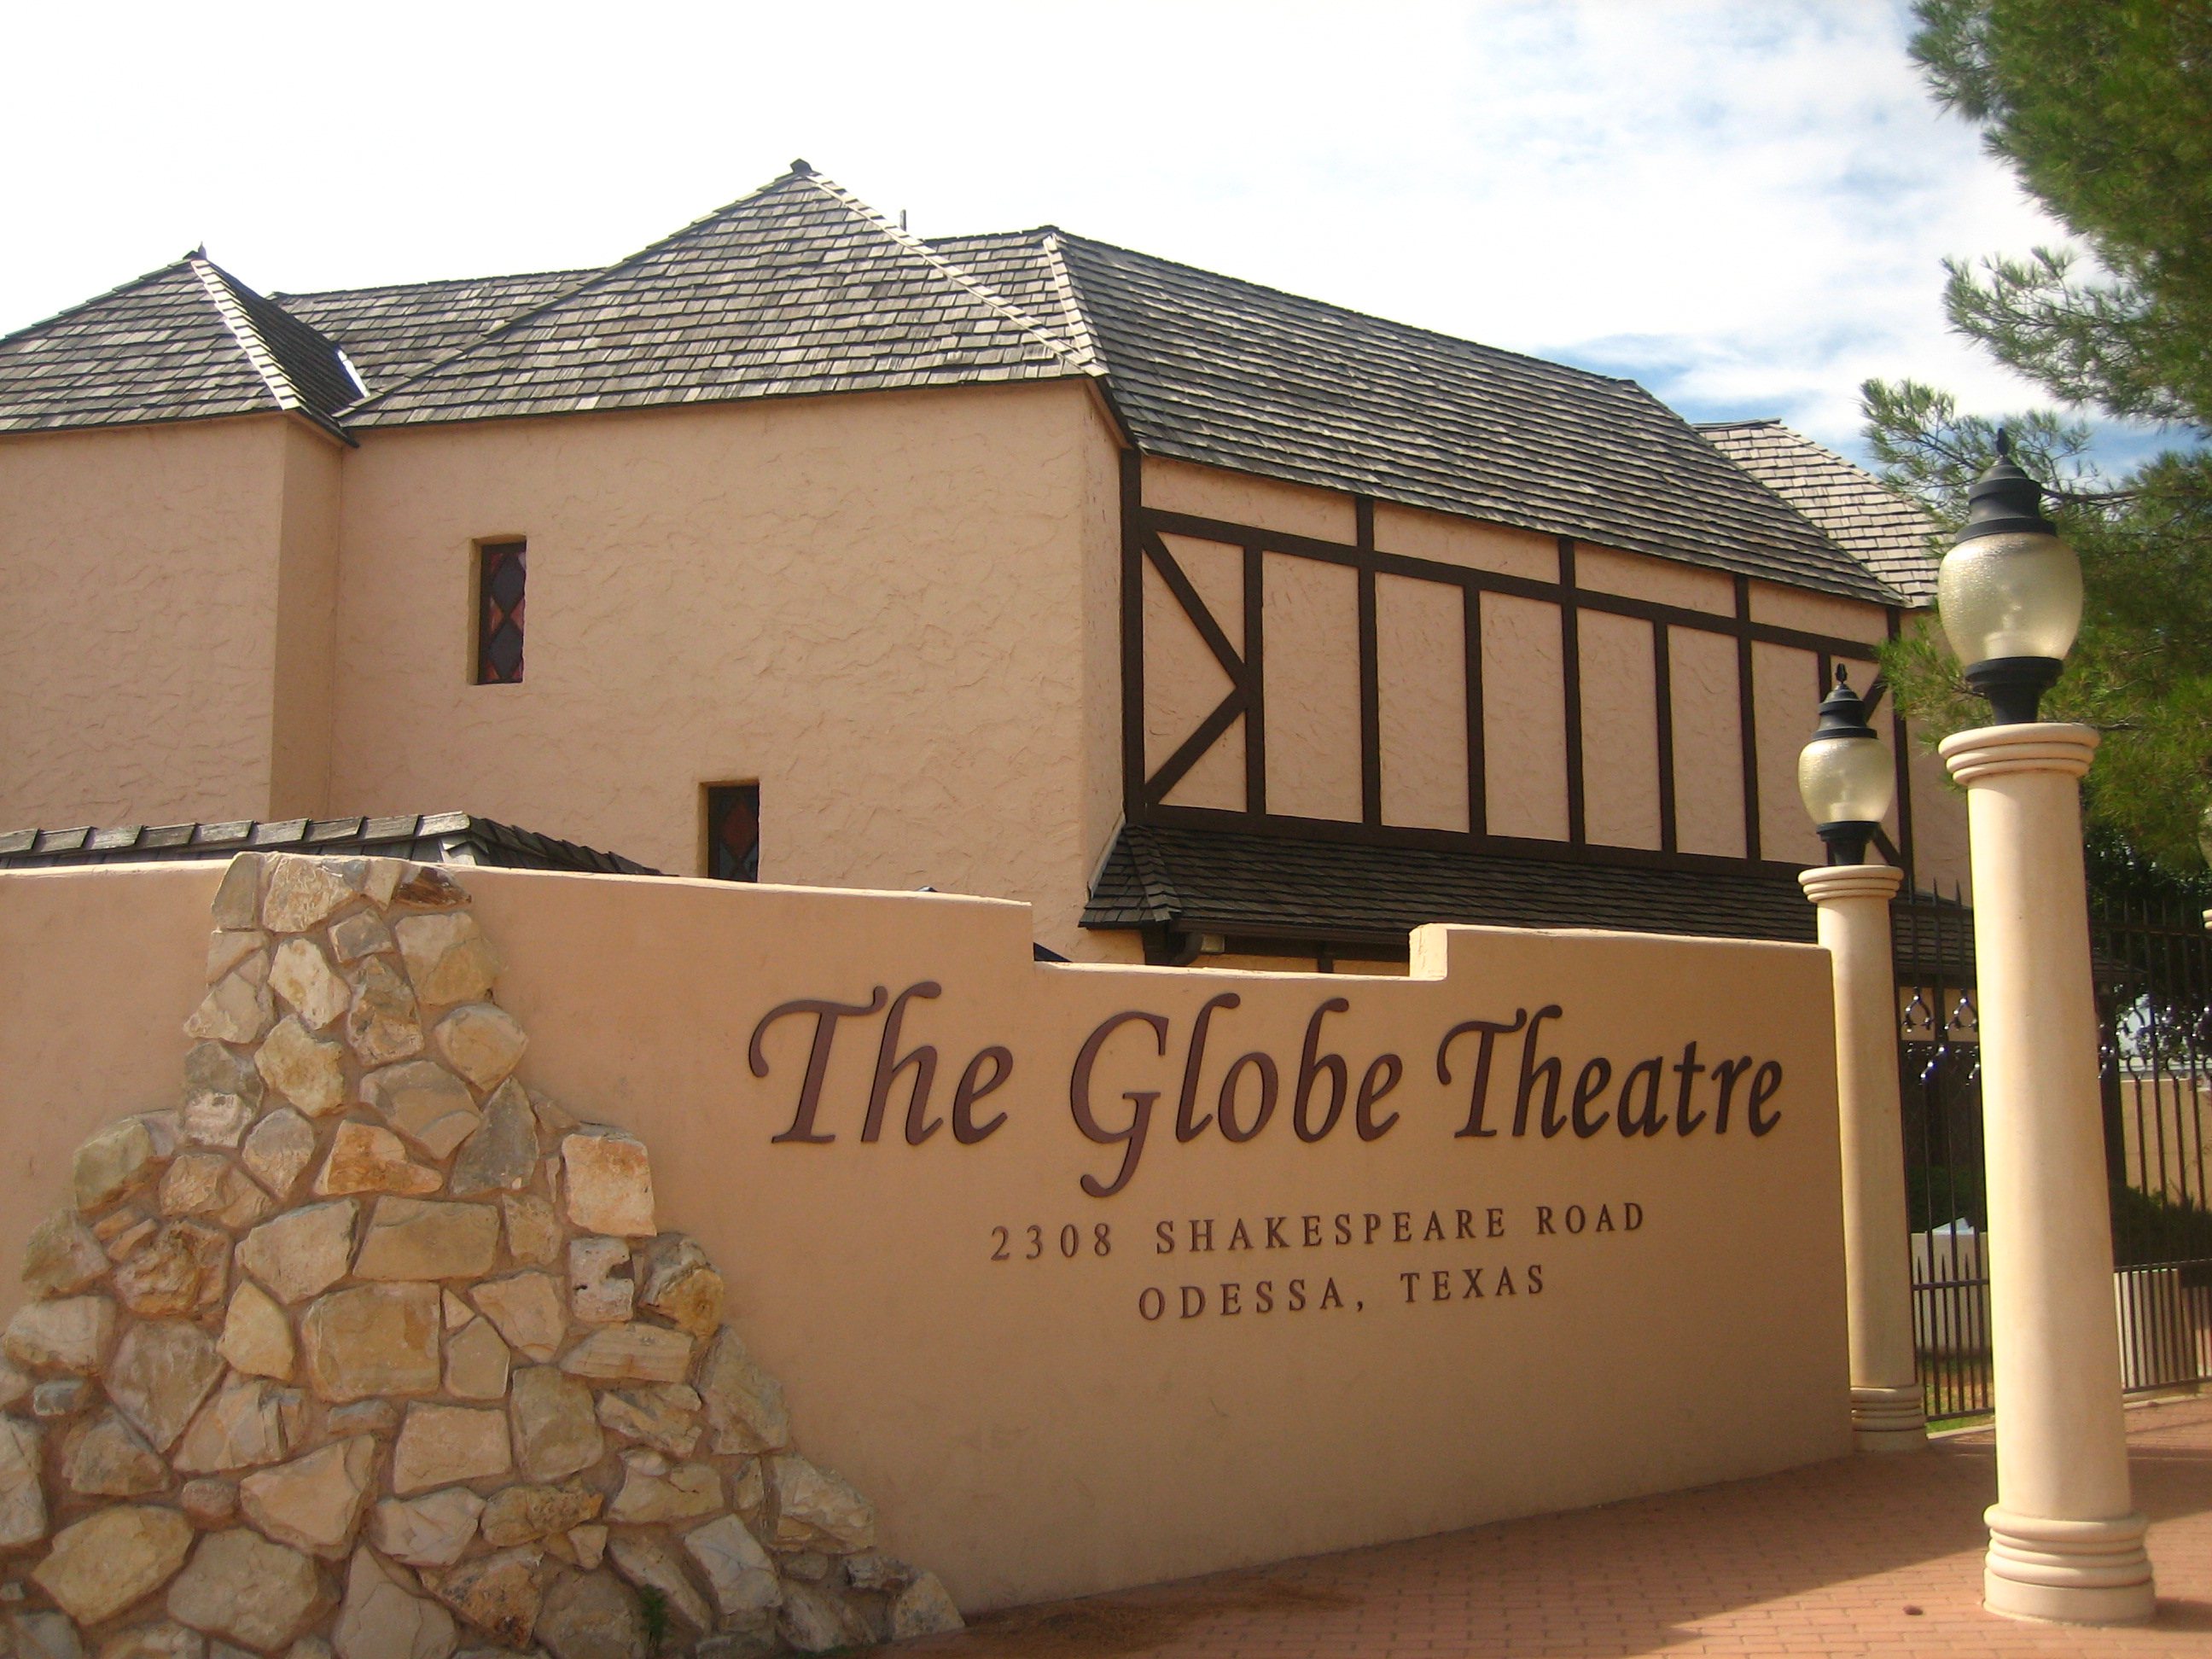 Instructions On How To Build A Model Of The Globe Theater